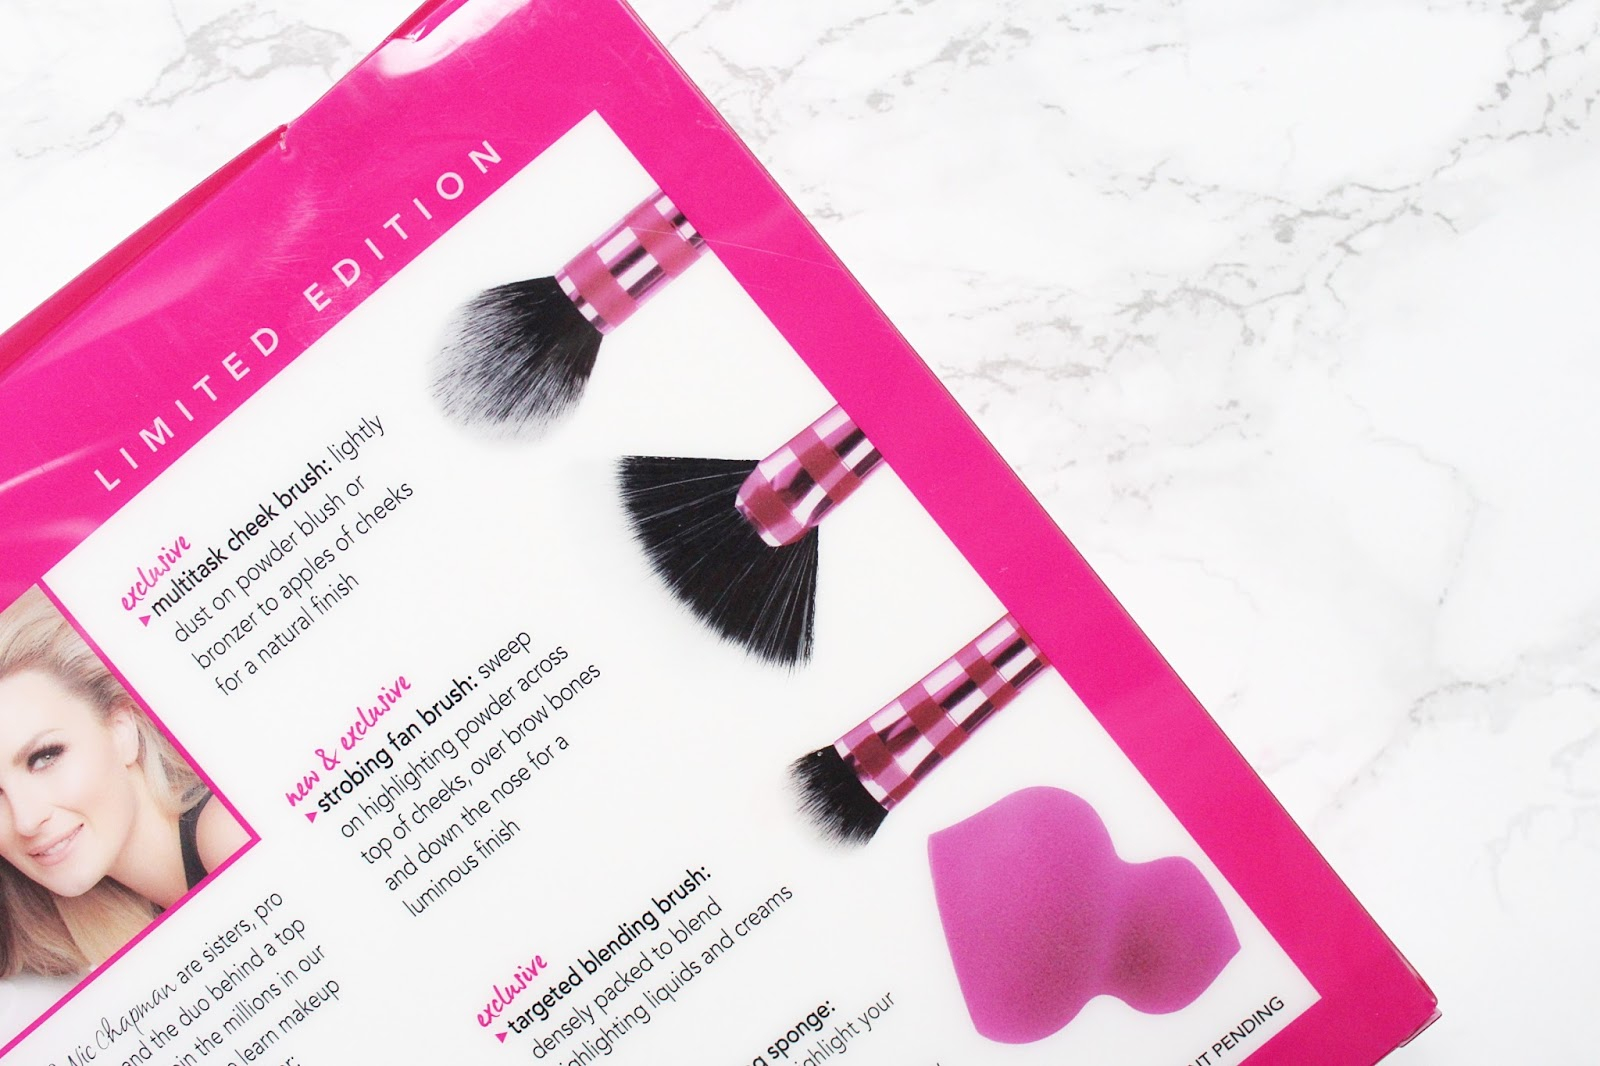 Real Techniques Ready Set Glow Set Review